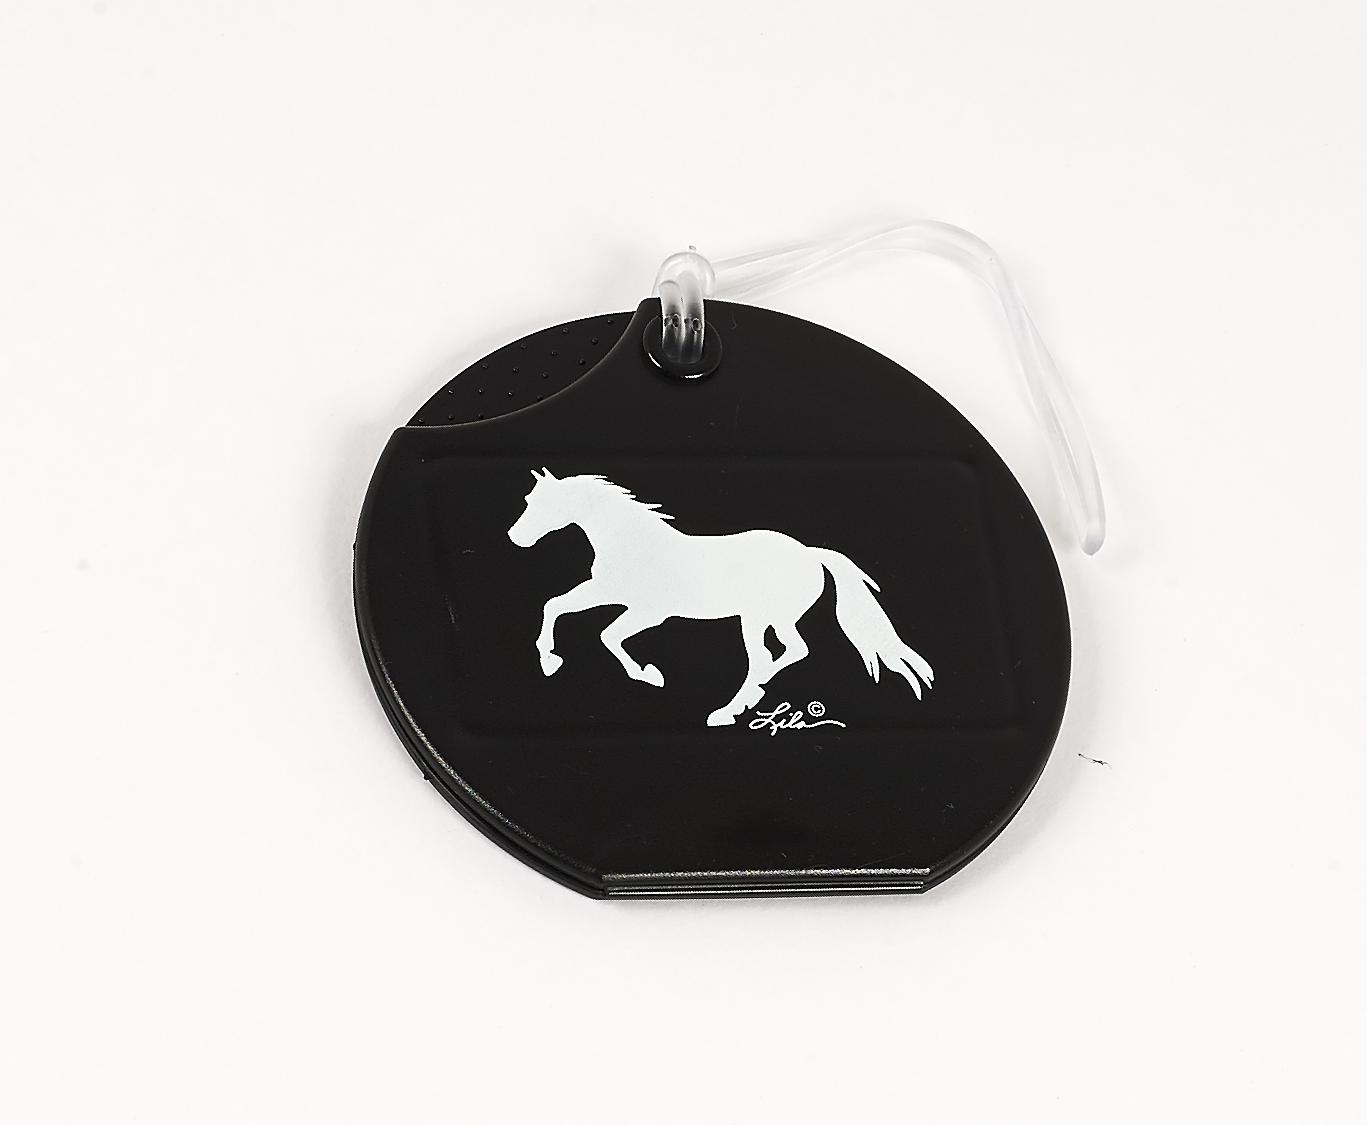 Lila Plastic Luggage Tag with Galloping Horse